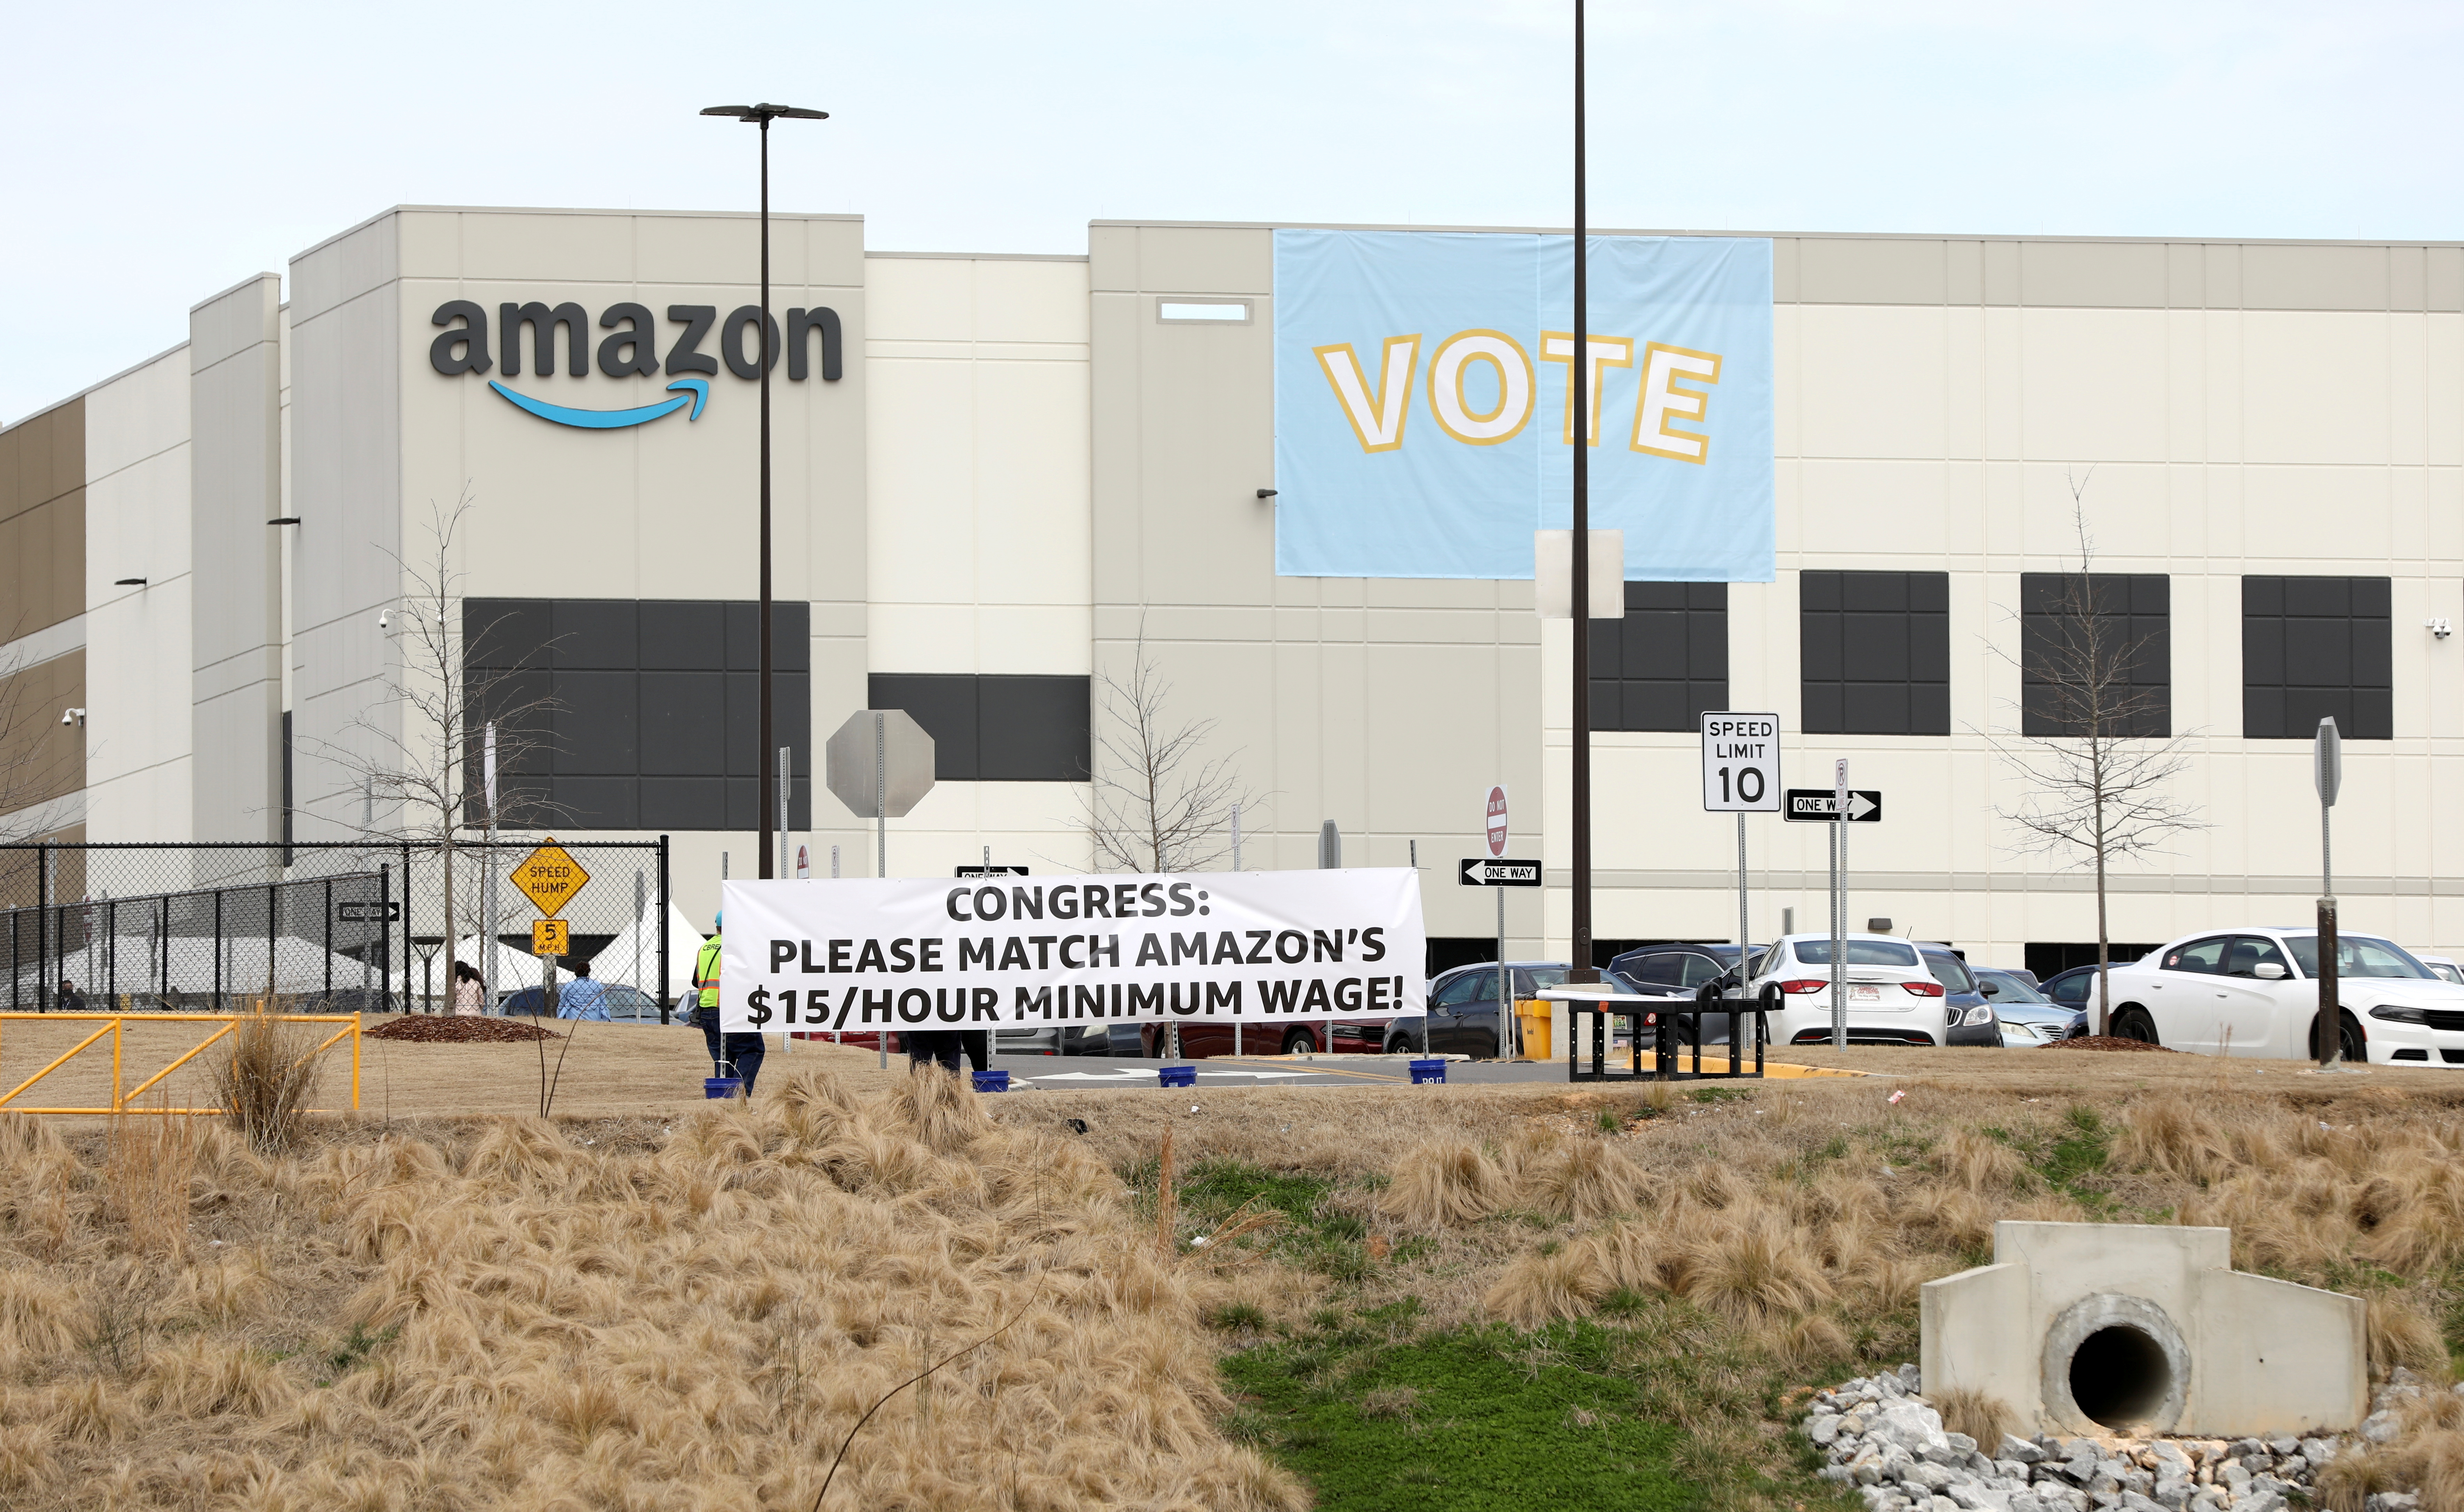 Banners are placed at the Amazon facility as members of a congressional delegation arrive to show their support for workers who will vote on whether to unionize, in Bessemer, Alabama, U.S. March 5, 2021.  REUTERS/Dustin Chambers?/File Photo